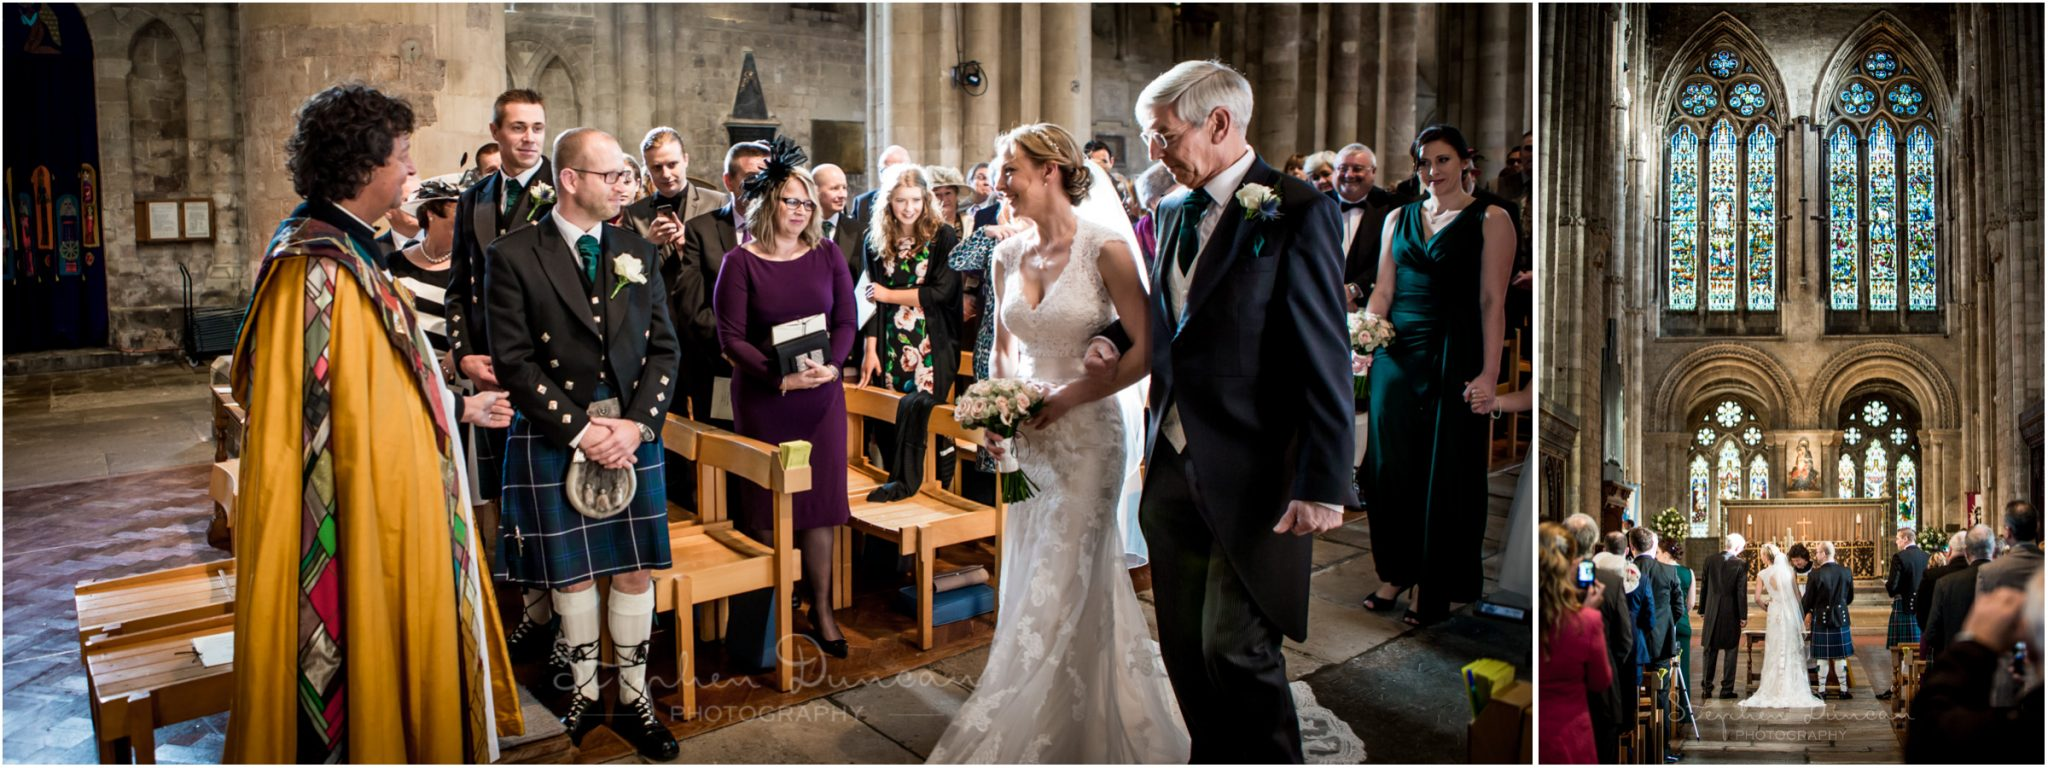 Romsey Abbey wedding photographer arrival of the bride